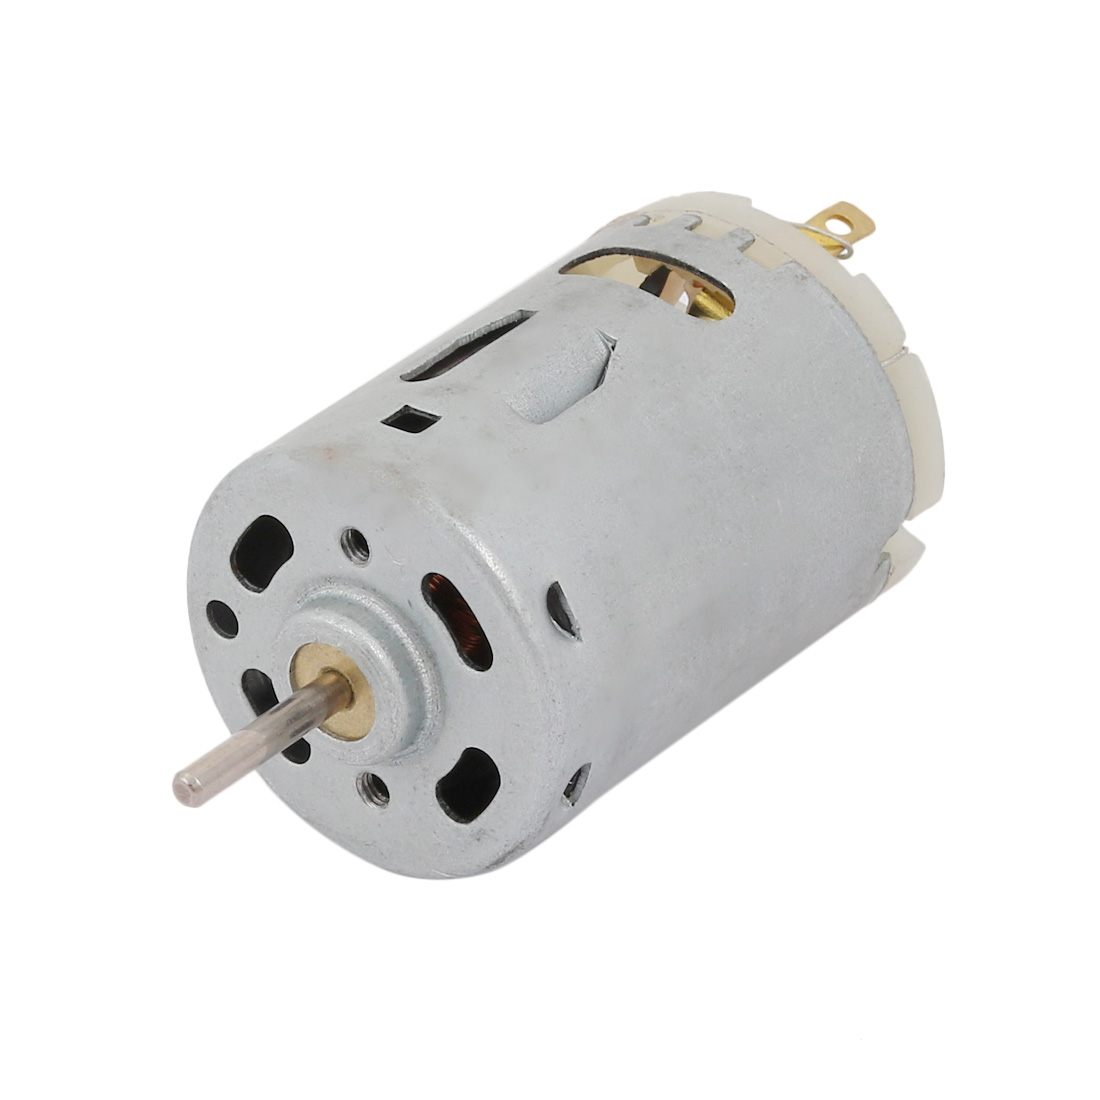 DC12V 6500RPM Cylinder Magnetic Electric Micro DC Motor R385 for RC Model Toy